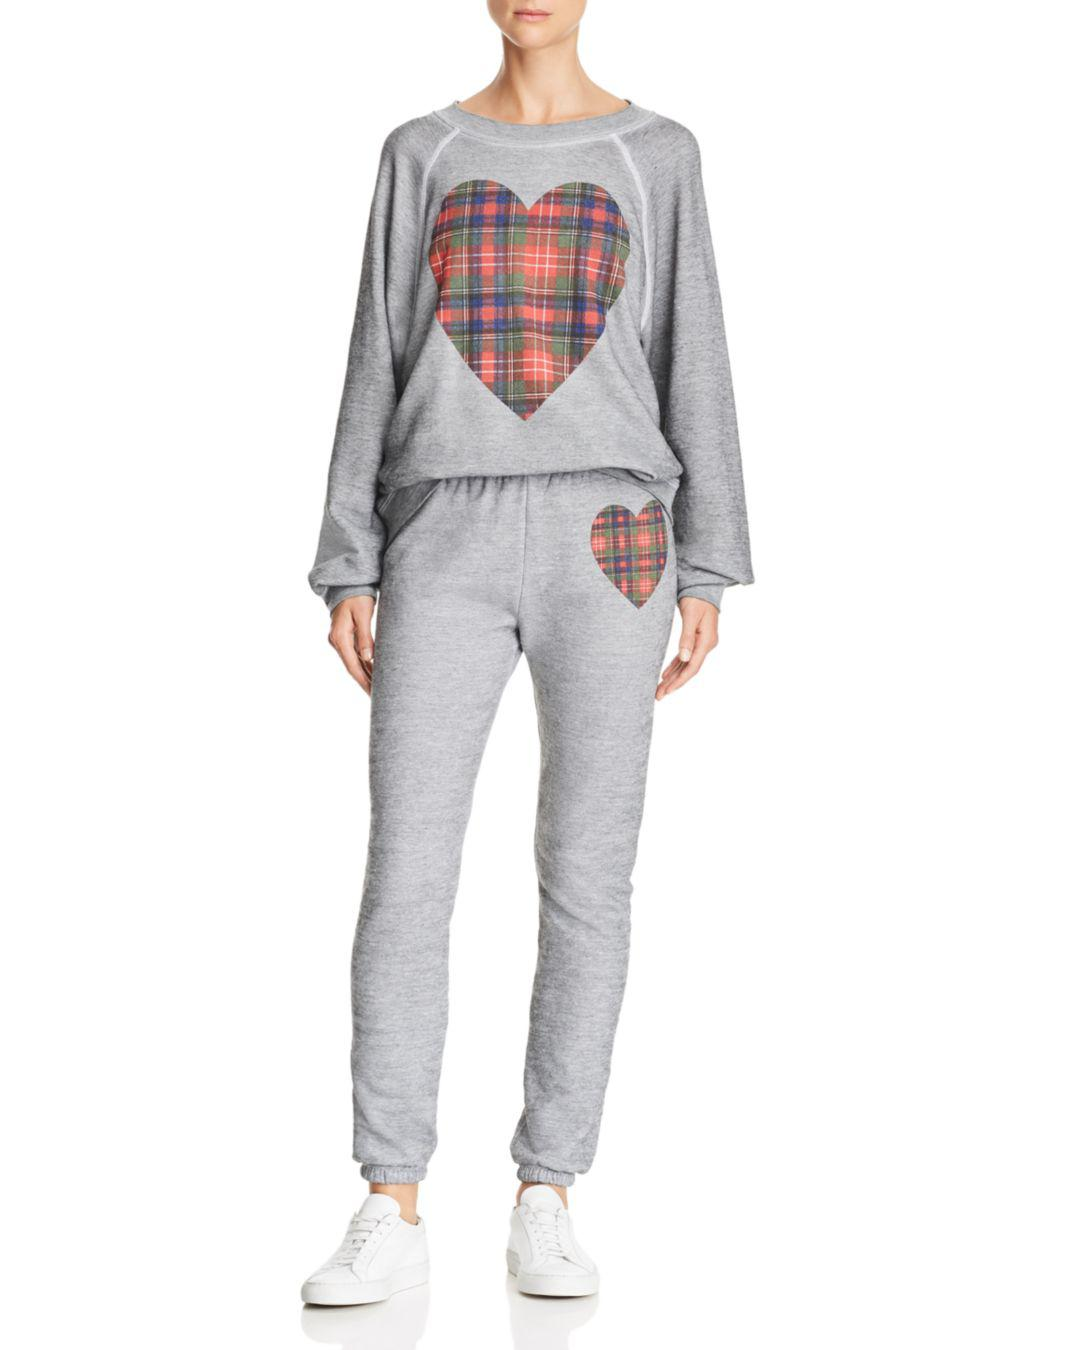 de1ce03aa7ebe Lyst - Wildfox Knox Tartan Heart Sweatpants in Gray